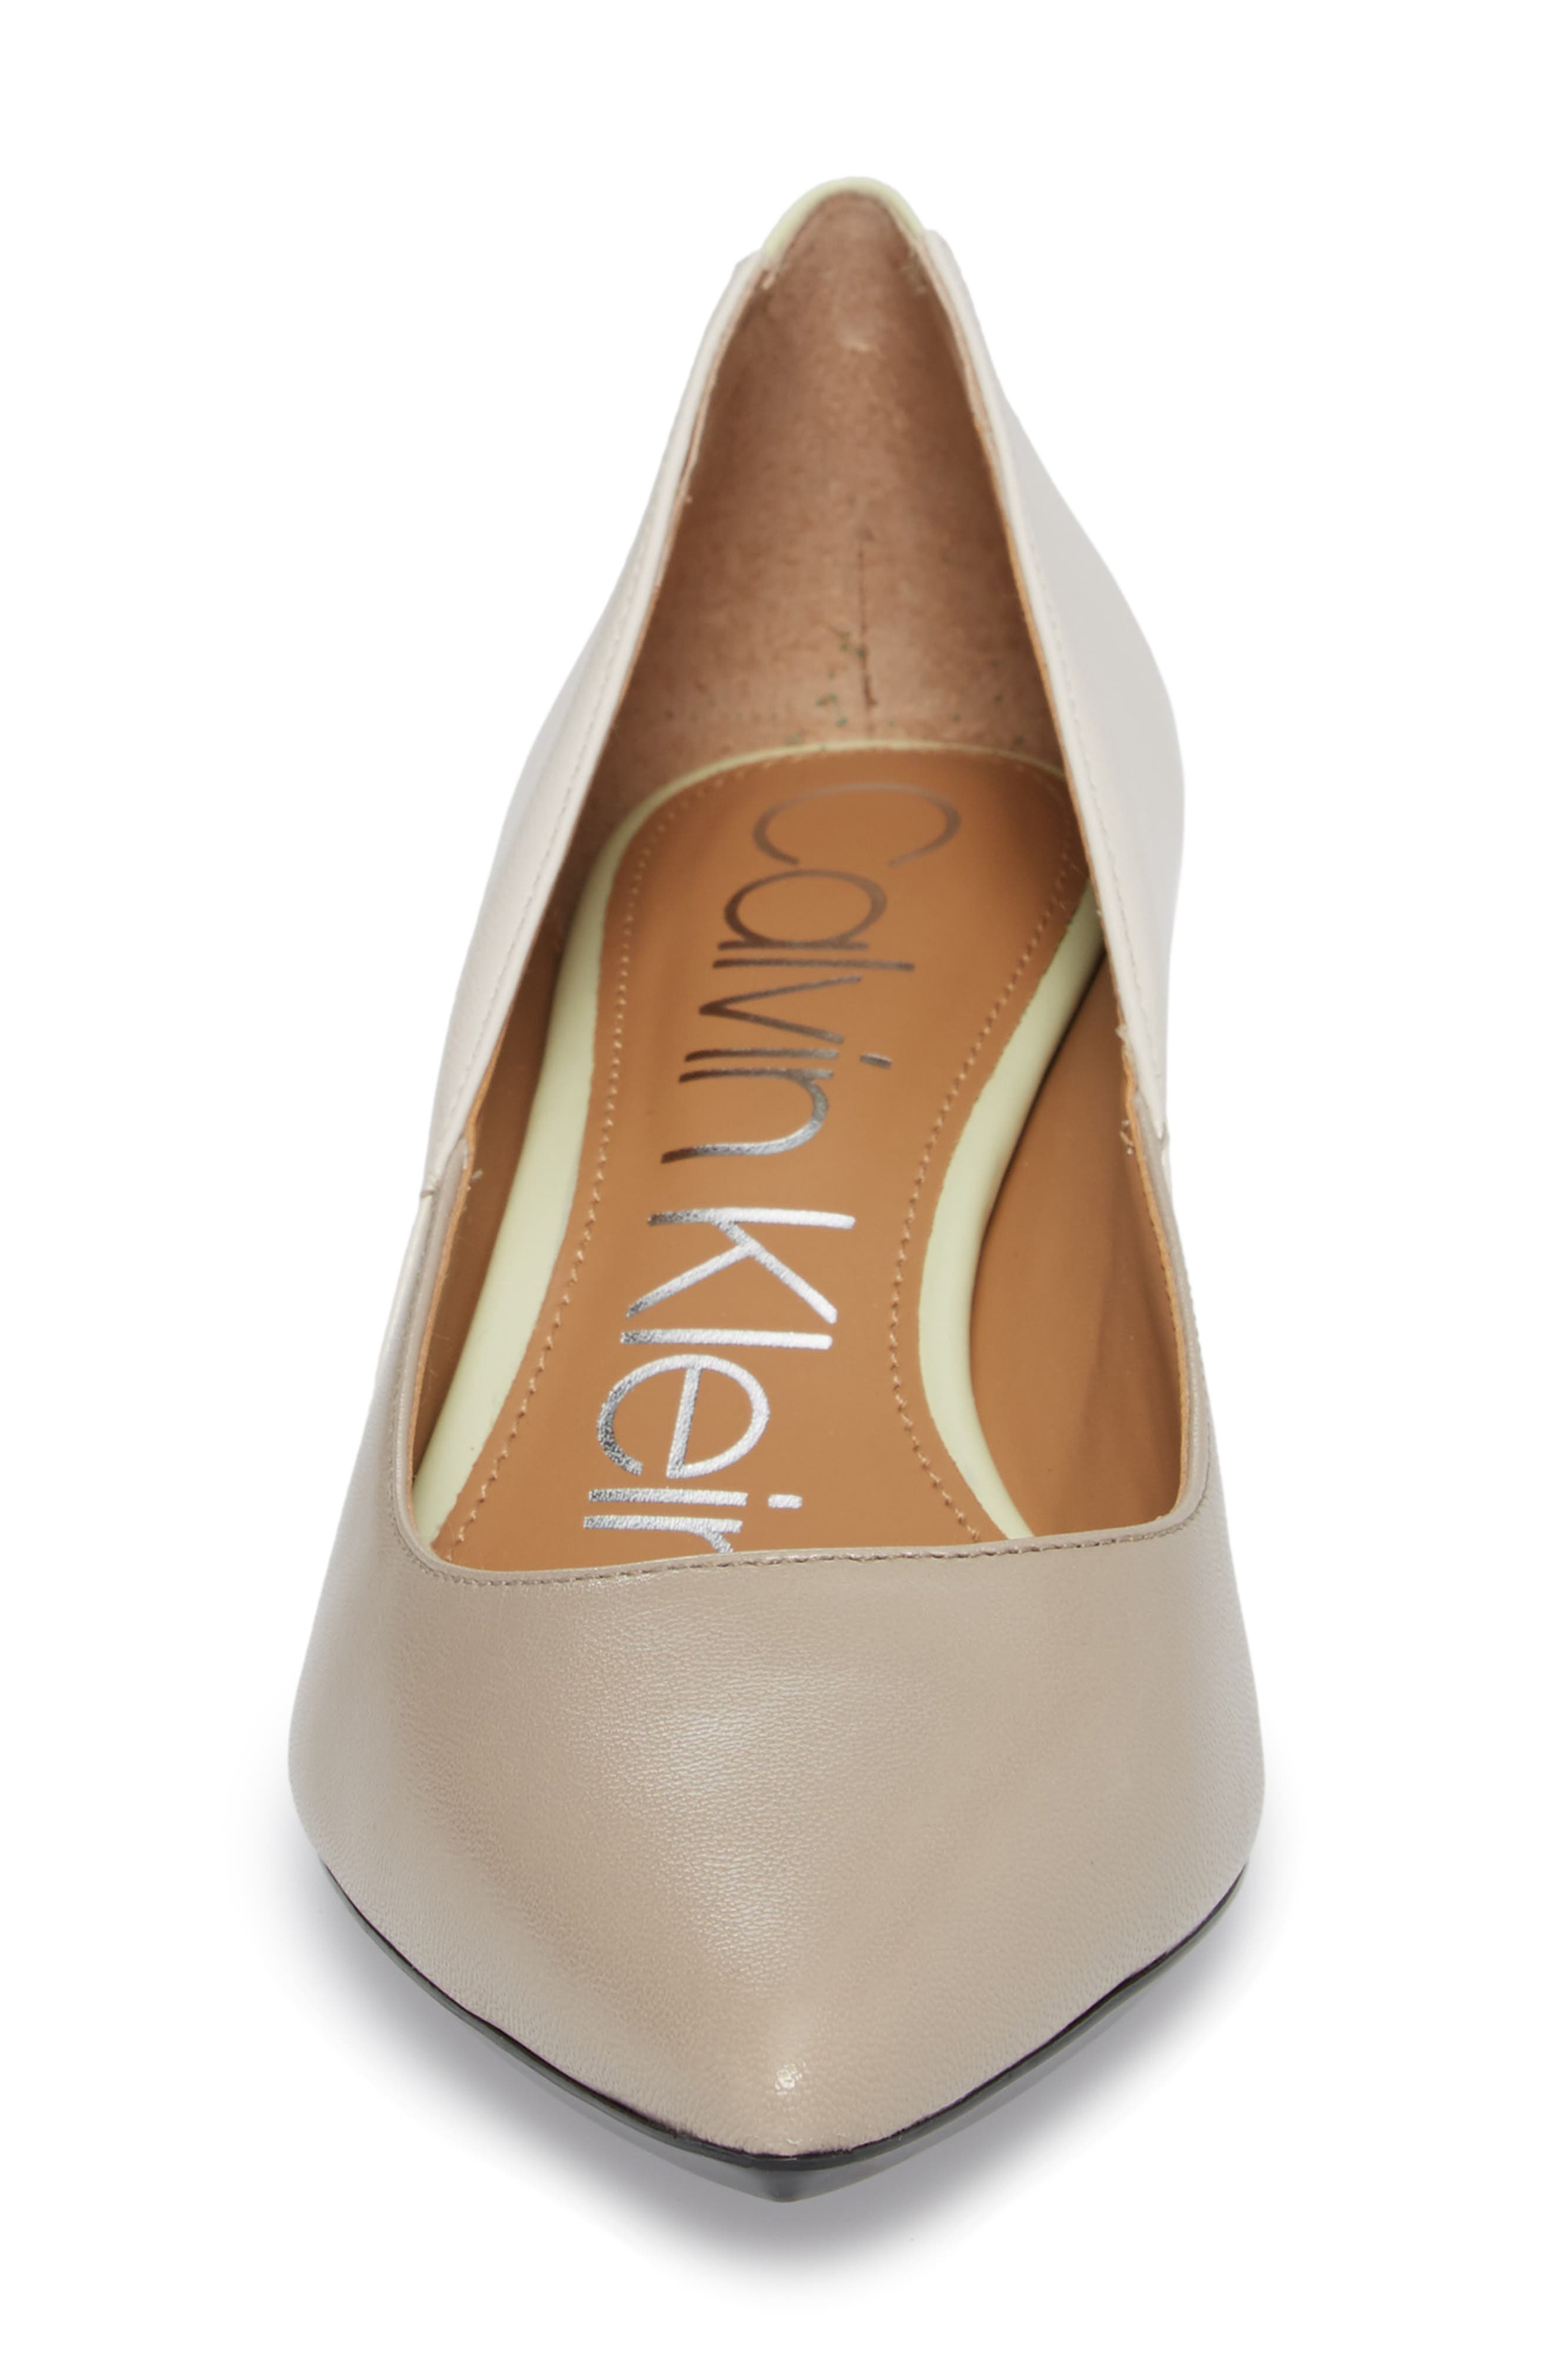 Grayce Pointy Toe Pump,                             Alternate thumbnail 4, color,                             Clay/ White Leather